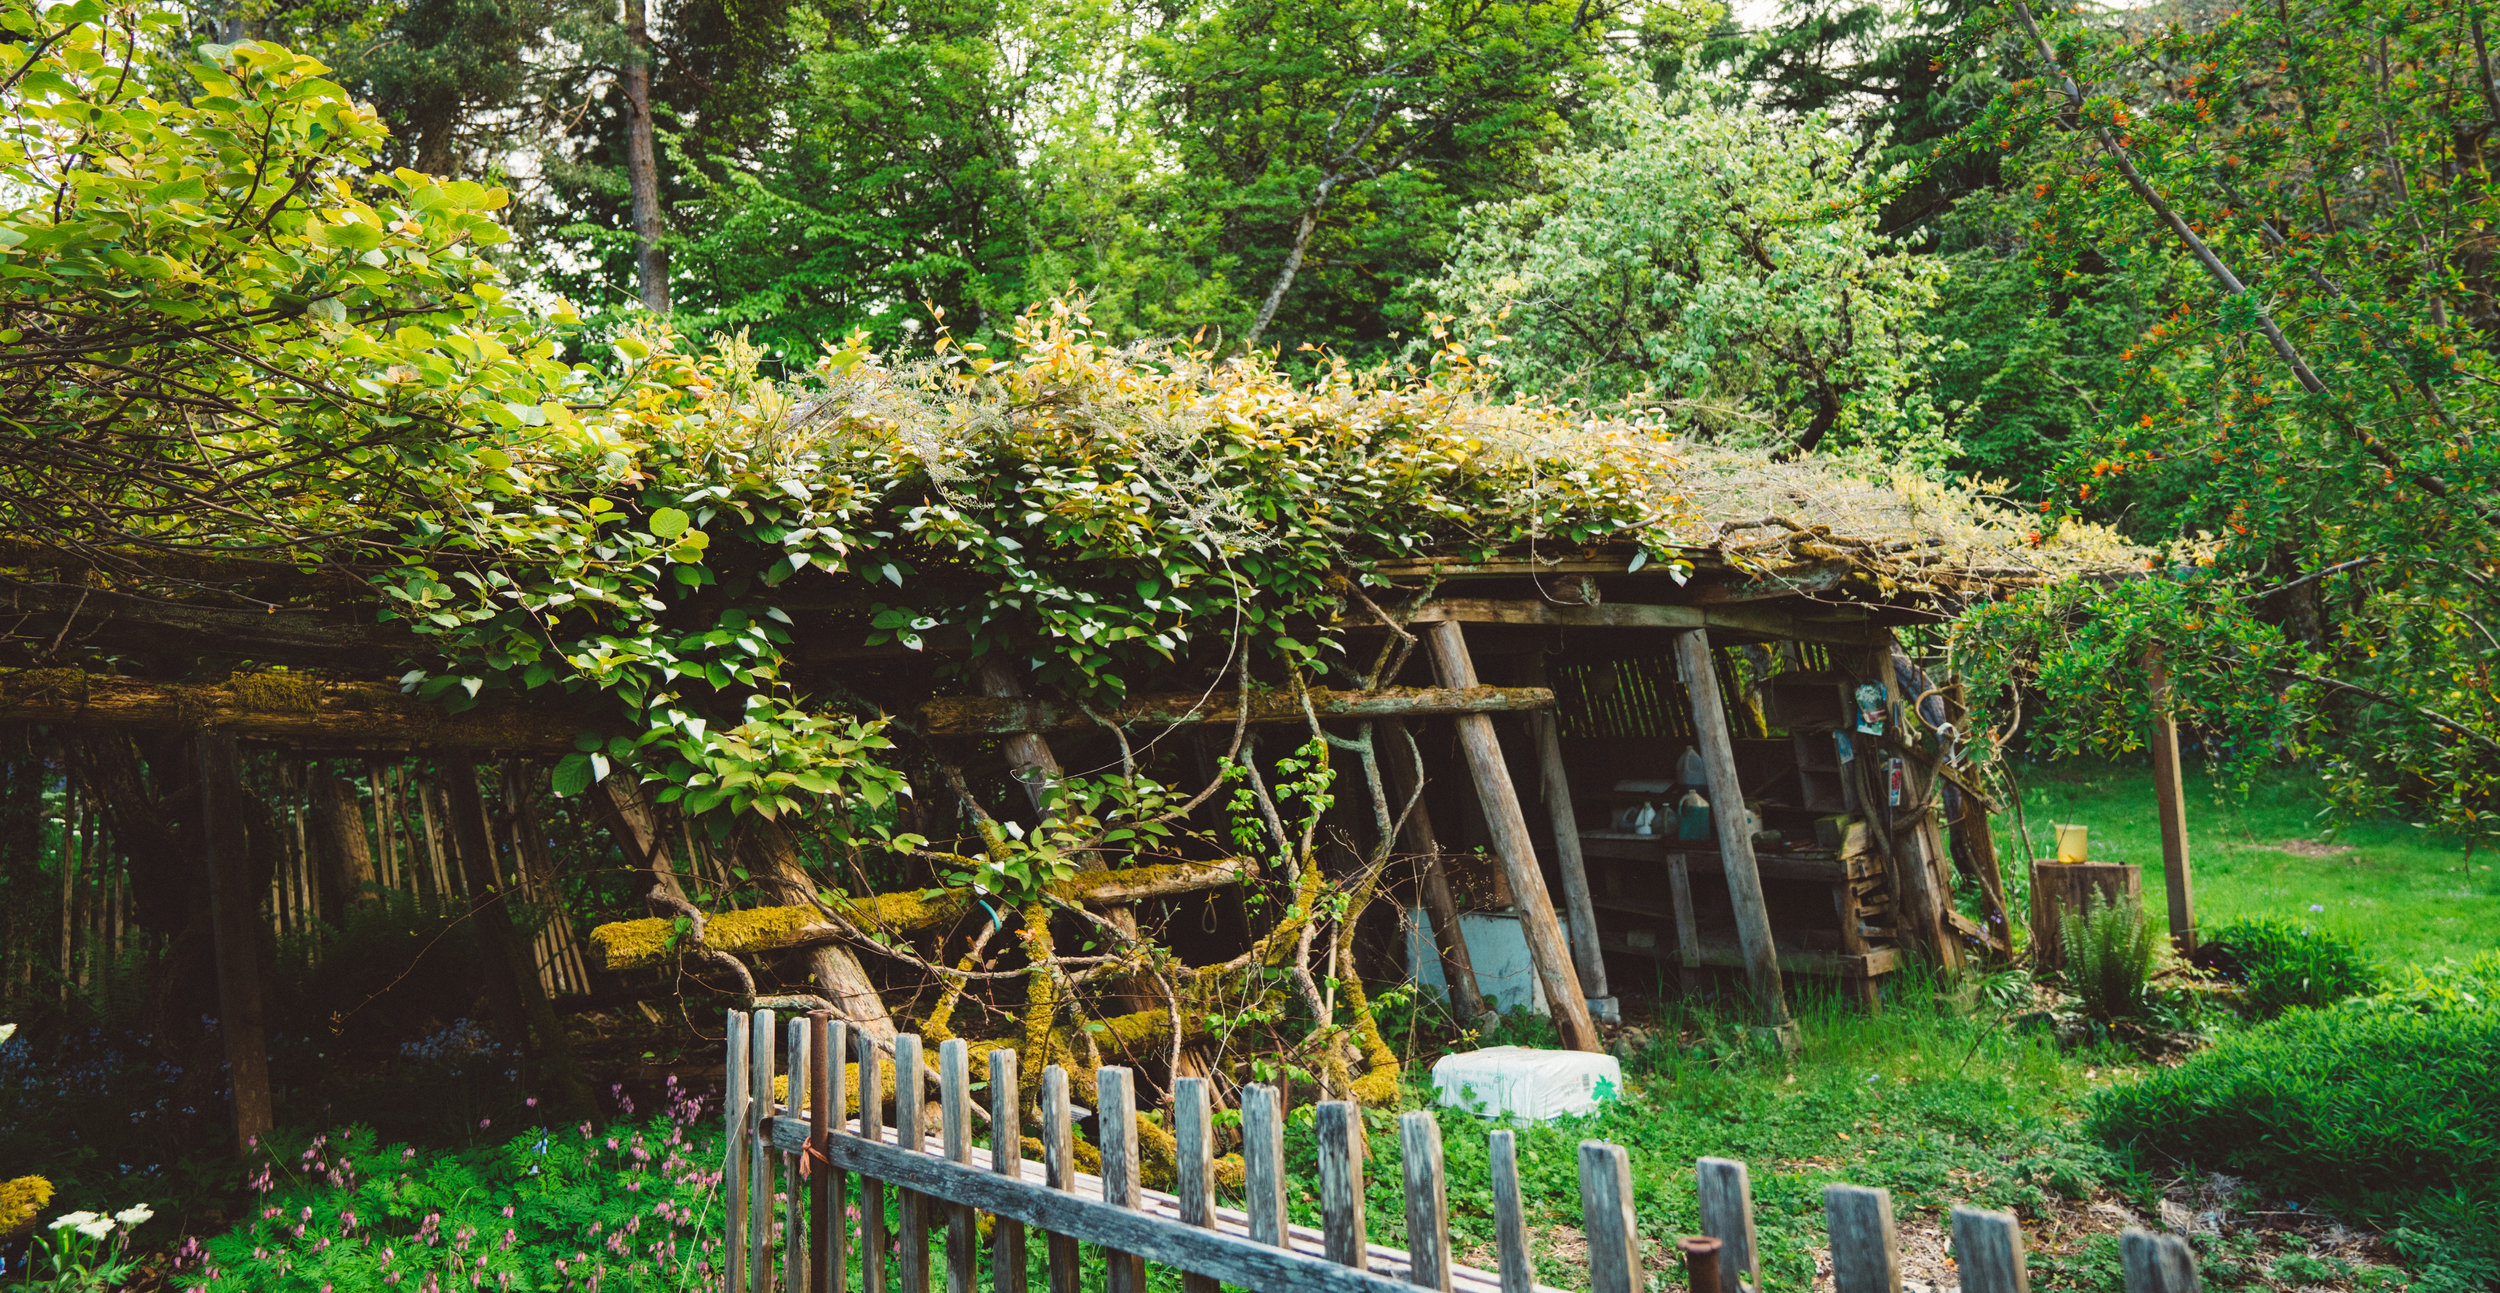 A garden shed covered in kiwi.